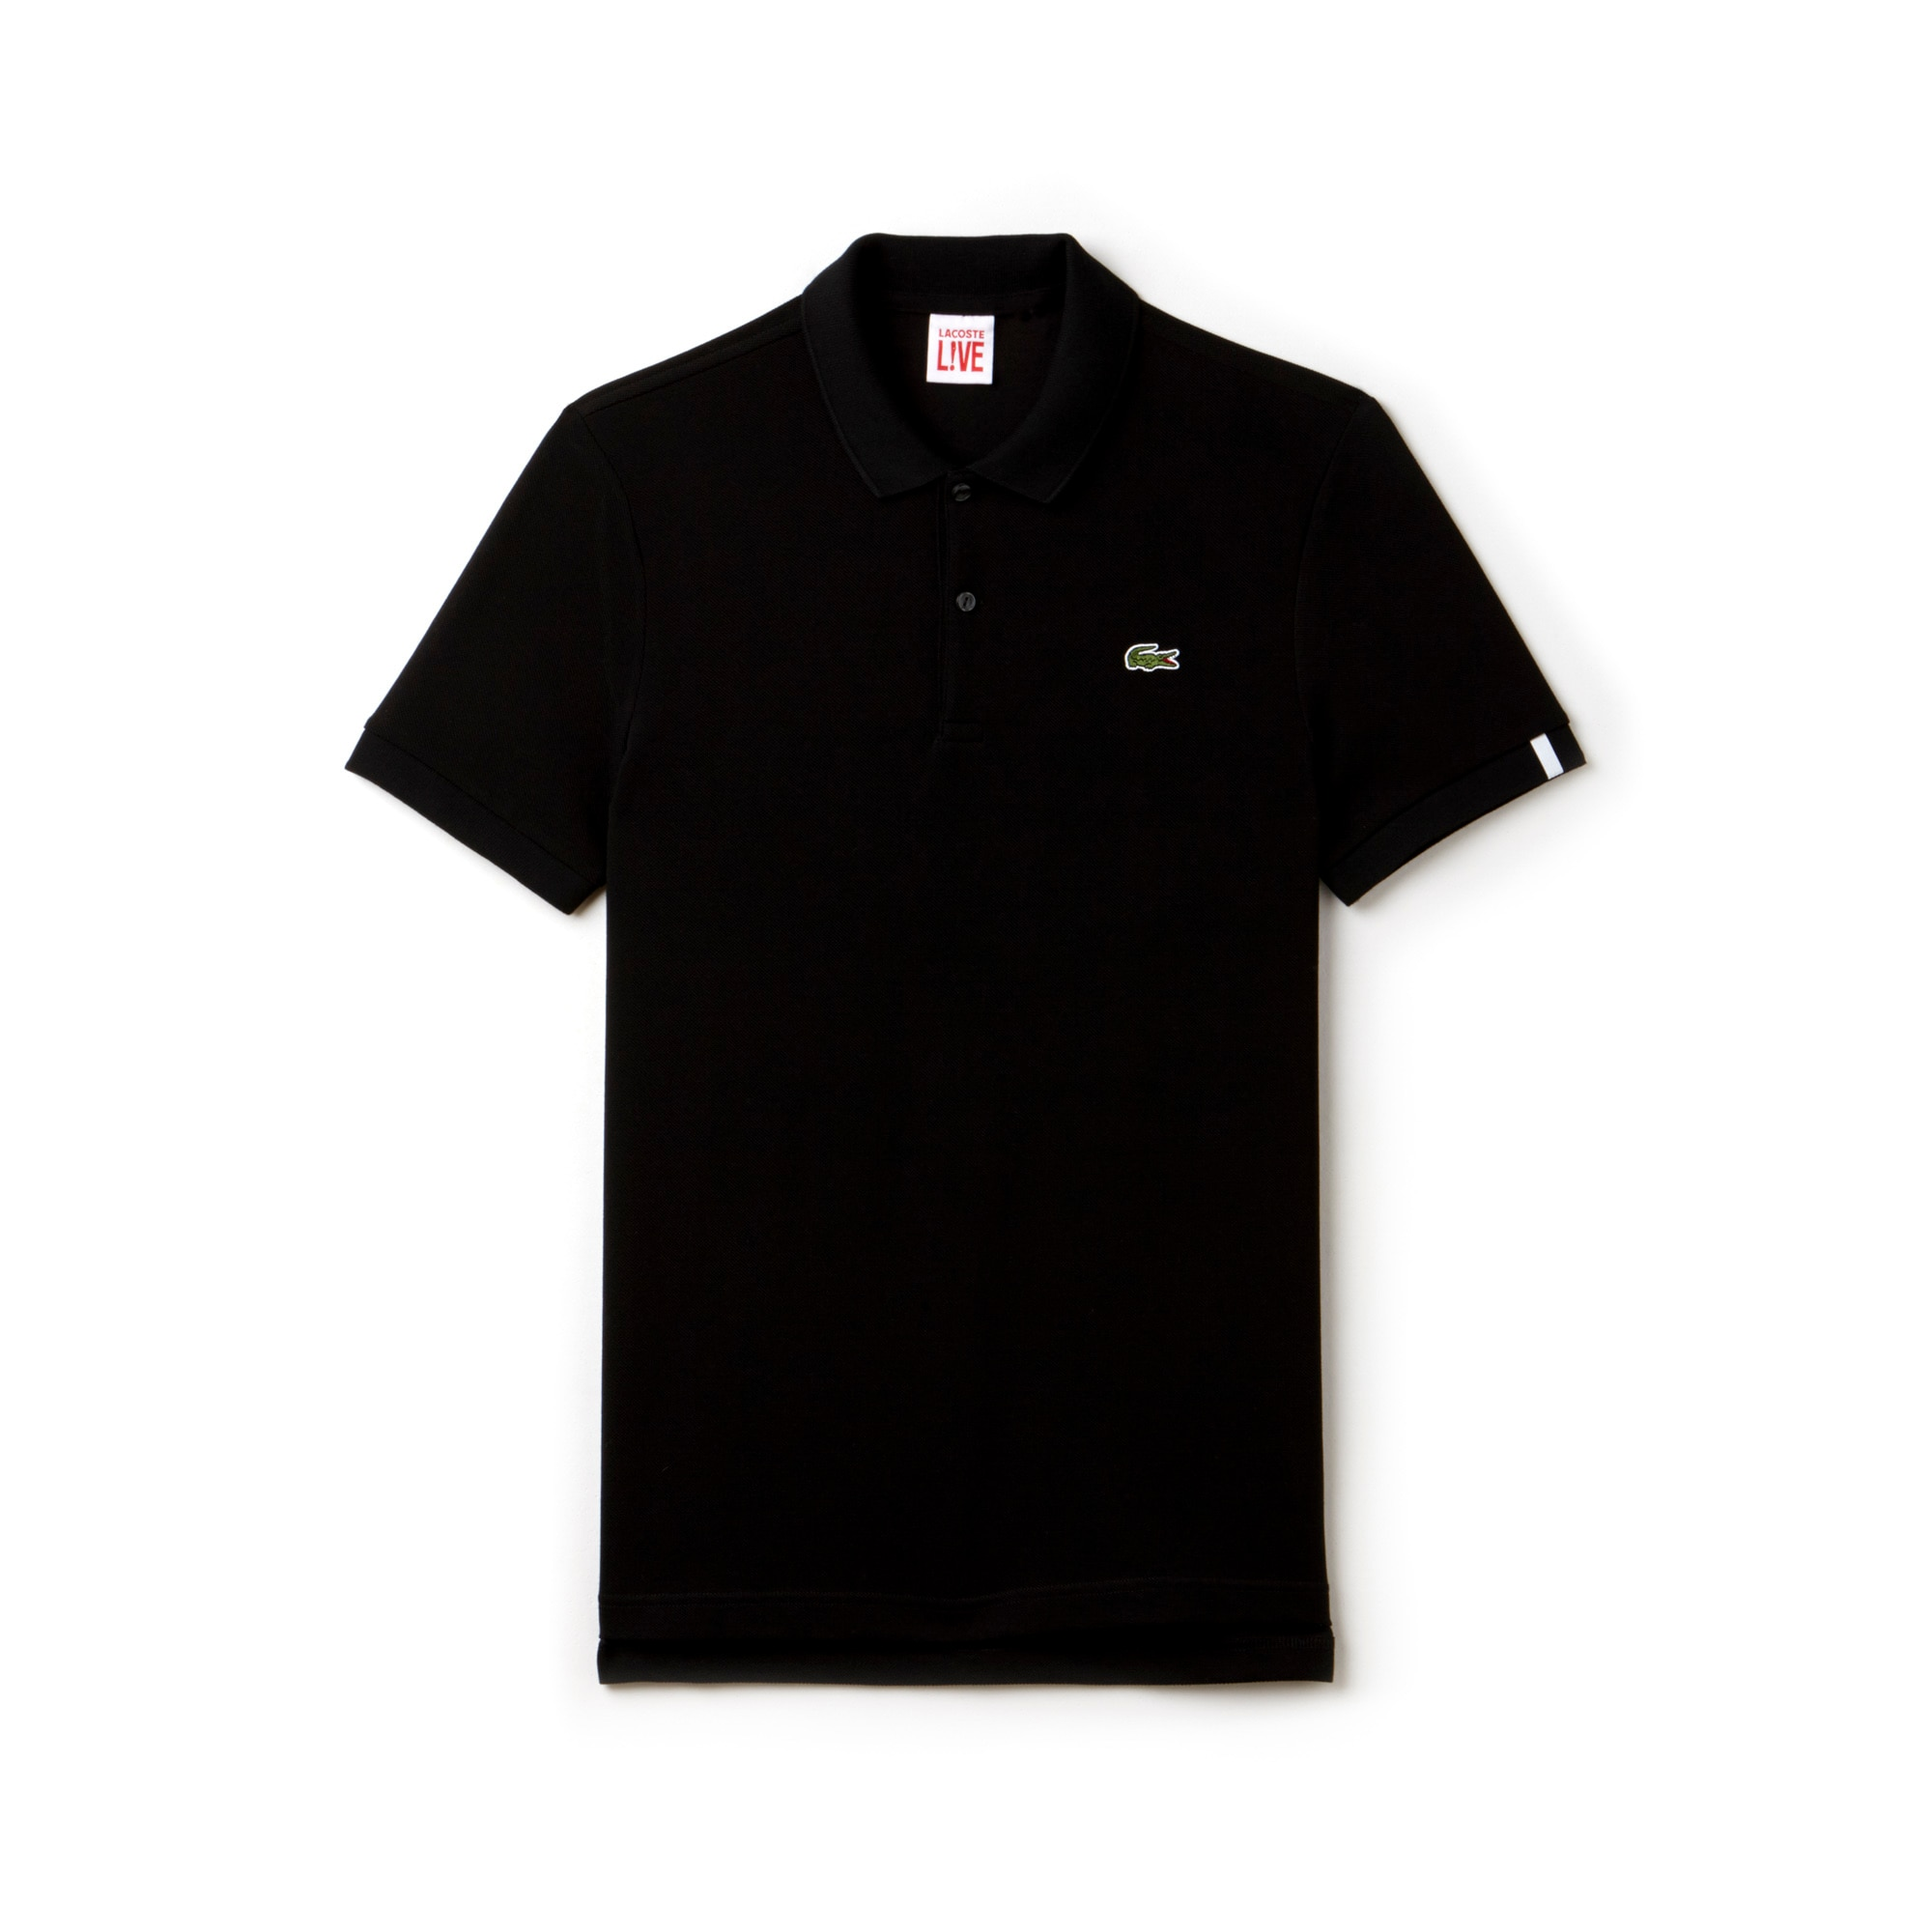 Unisex L!VE Ultra Slim Fit Piqué Polo Shirt